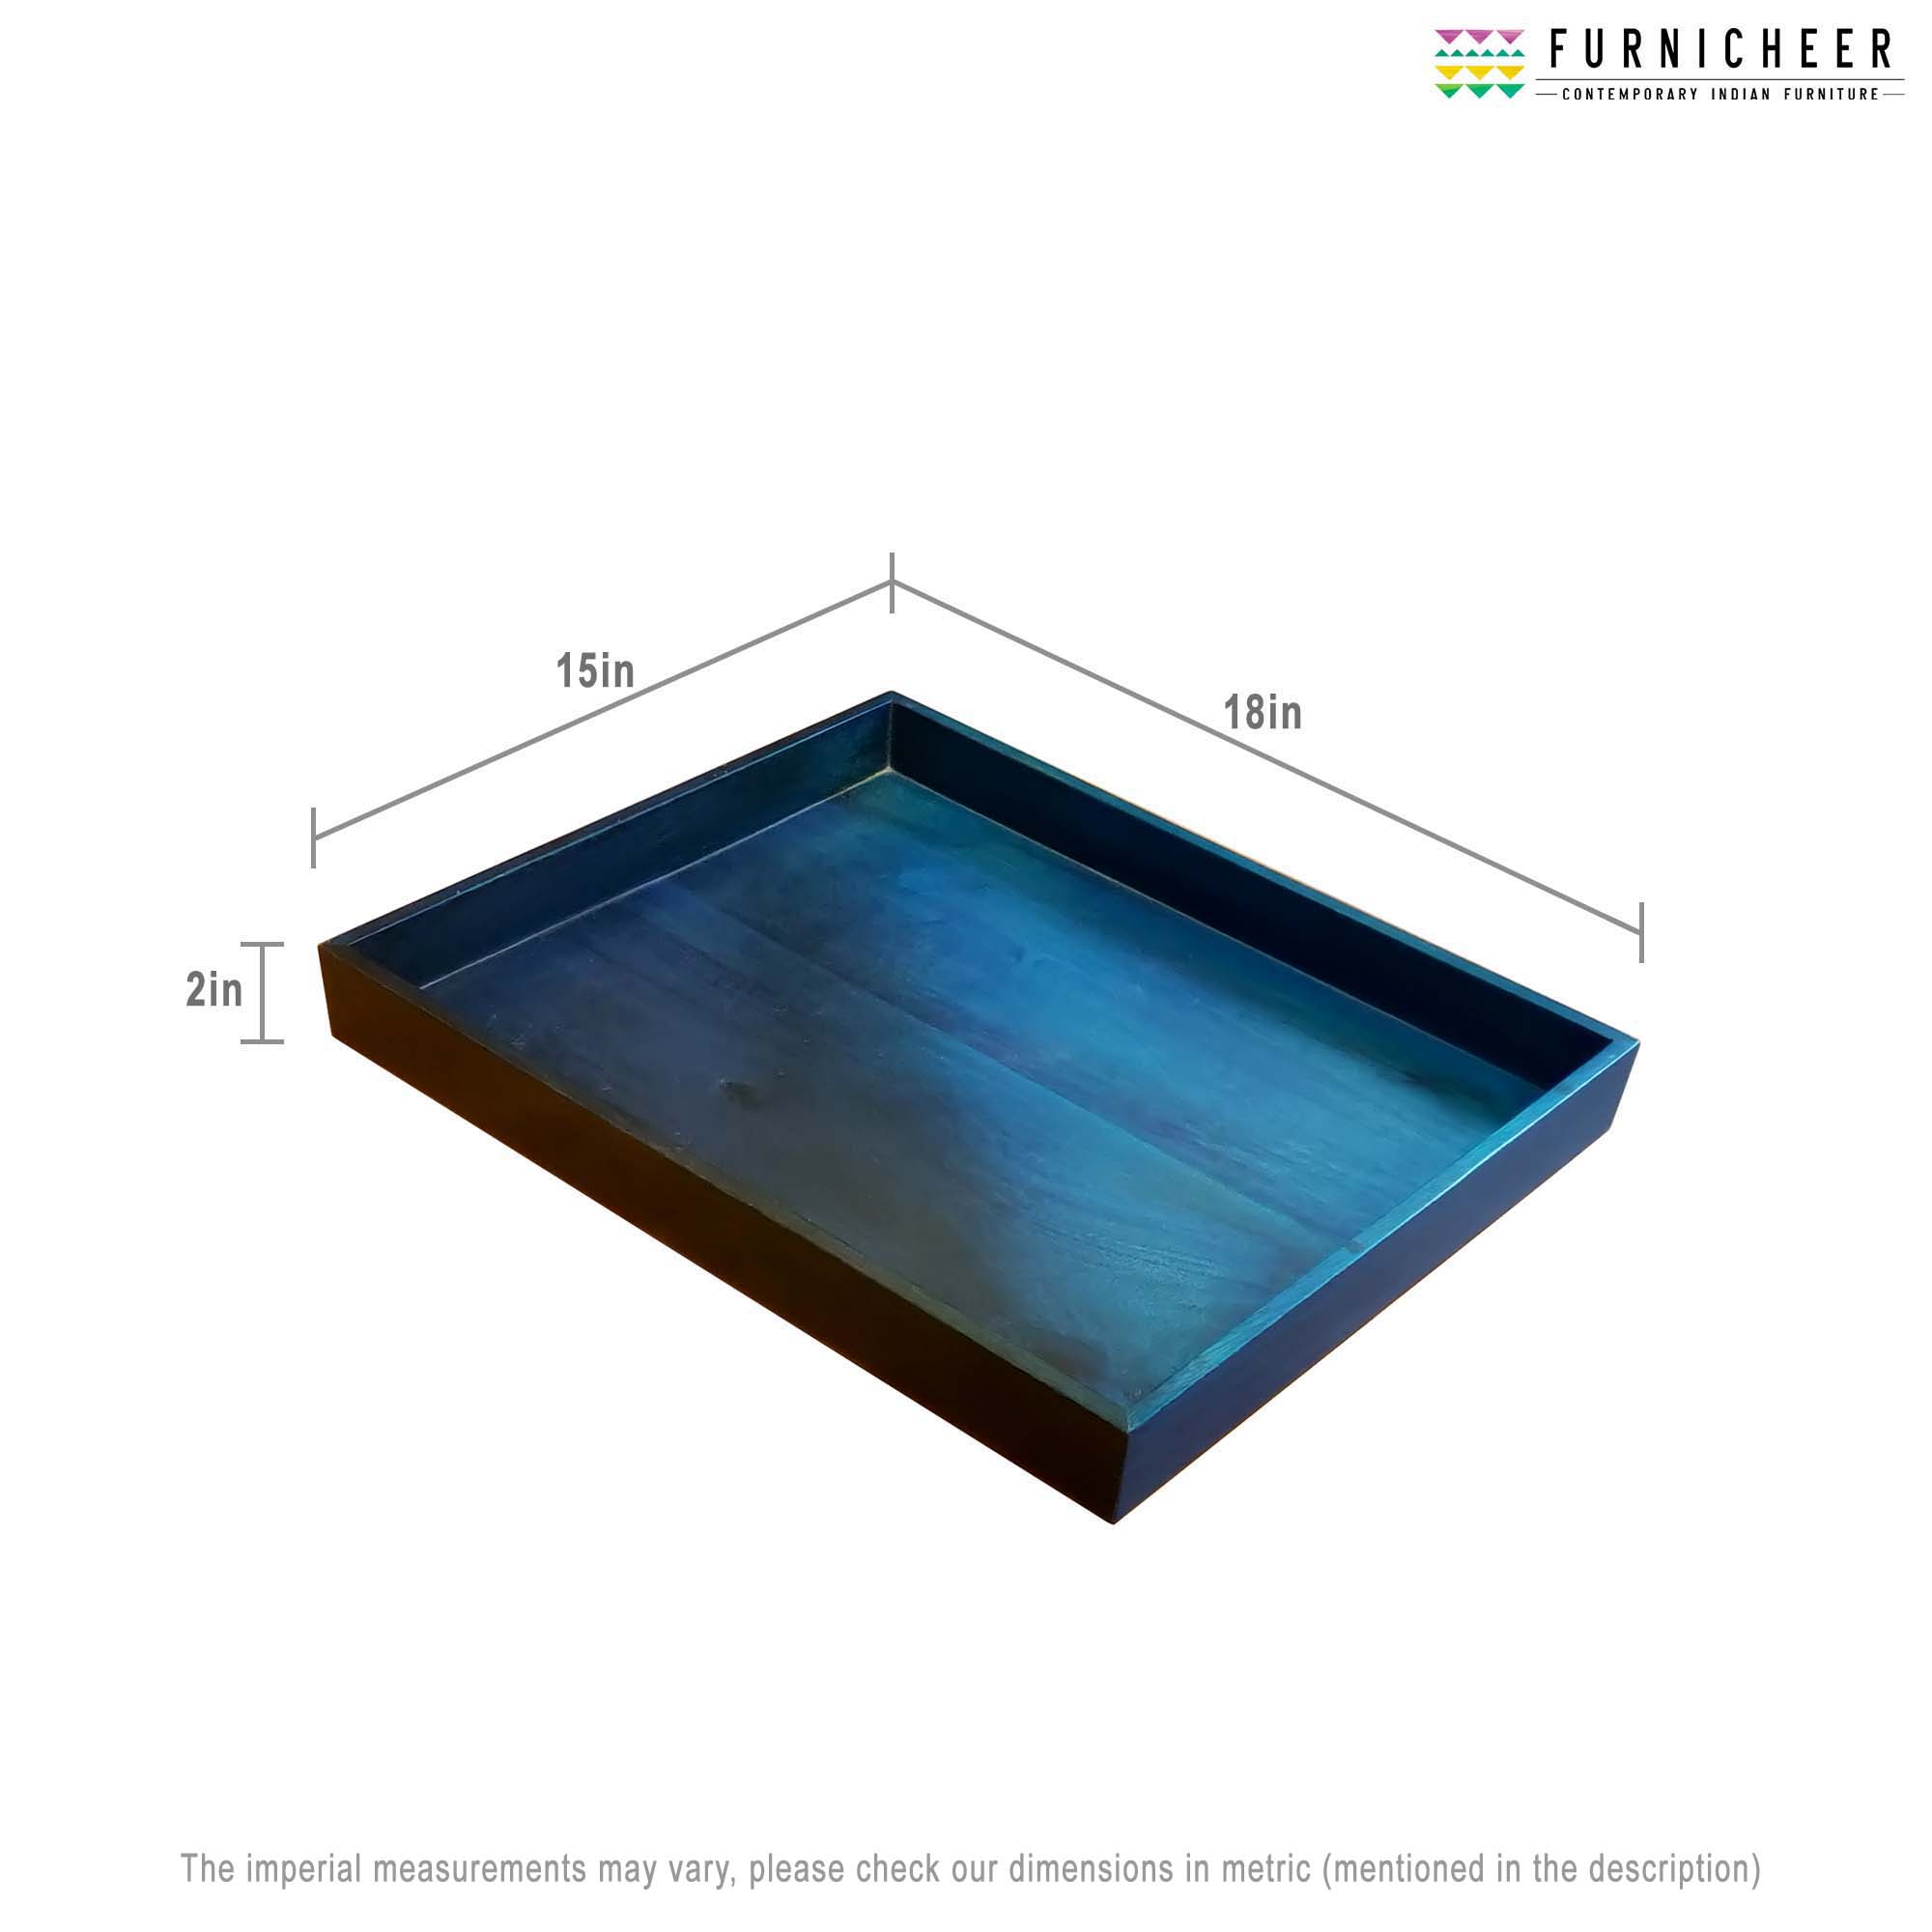 SERVING TRAY 18 X 15